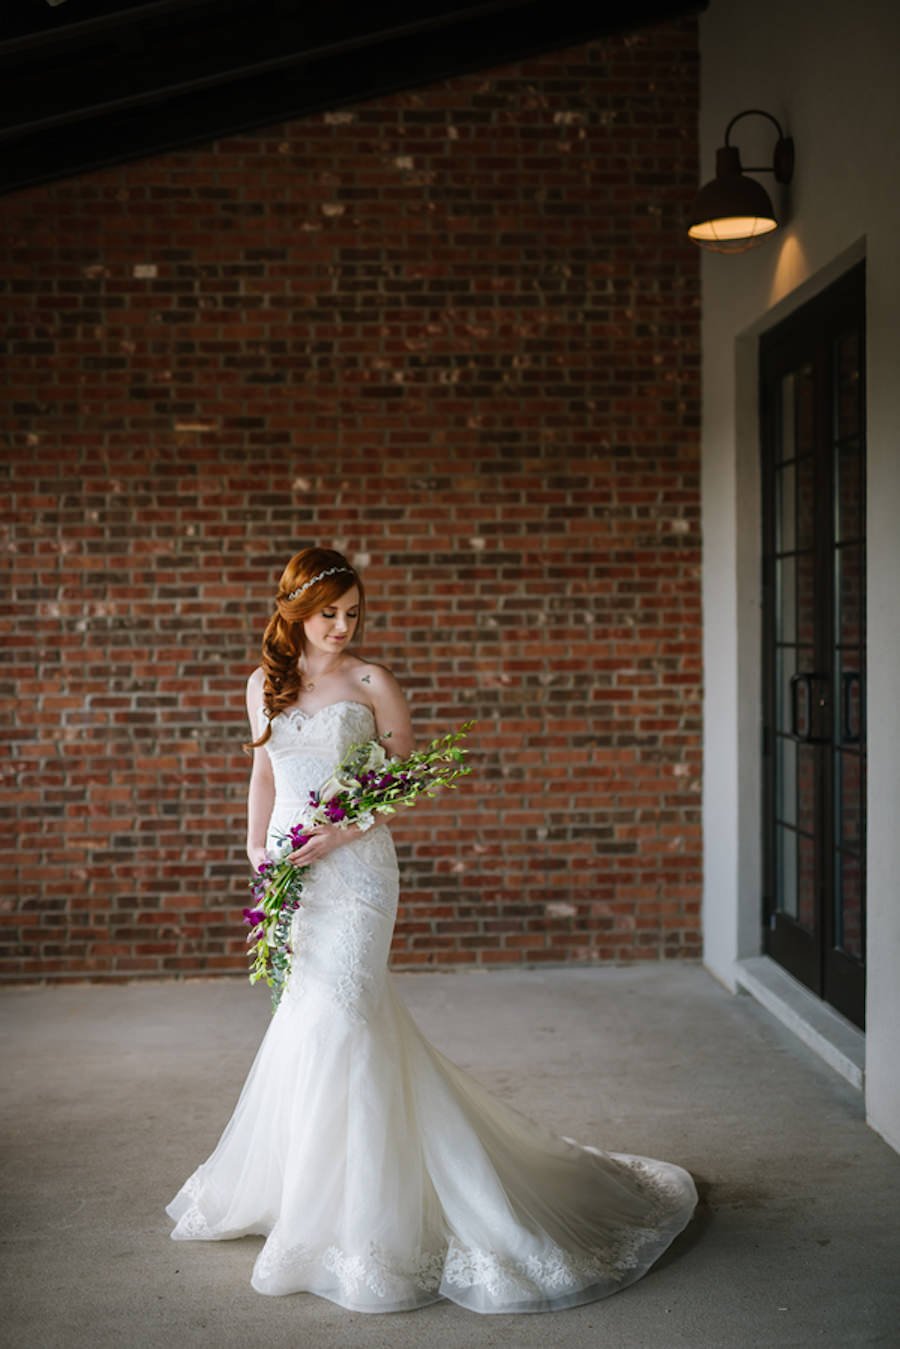 Ybor City Bridal Wedding Portrait in White, Strapless Lace Wedding Dress and Purple and Green Floral Wedding Bouquet | Coppertail Brewing Co